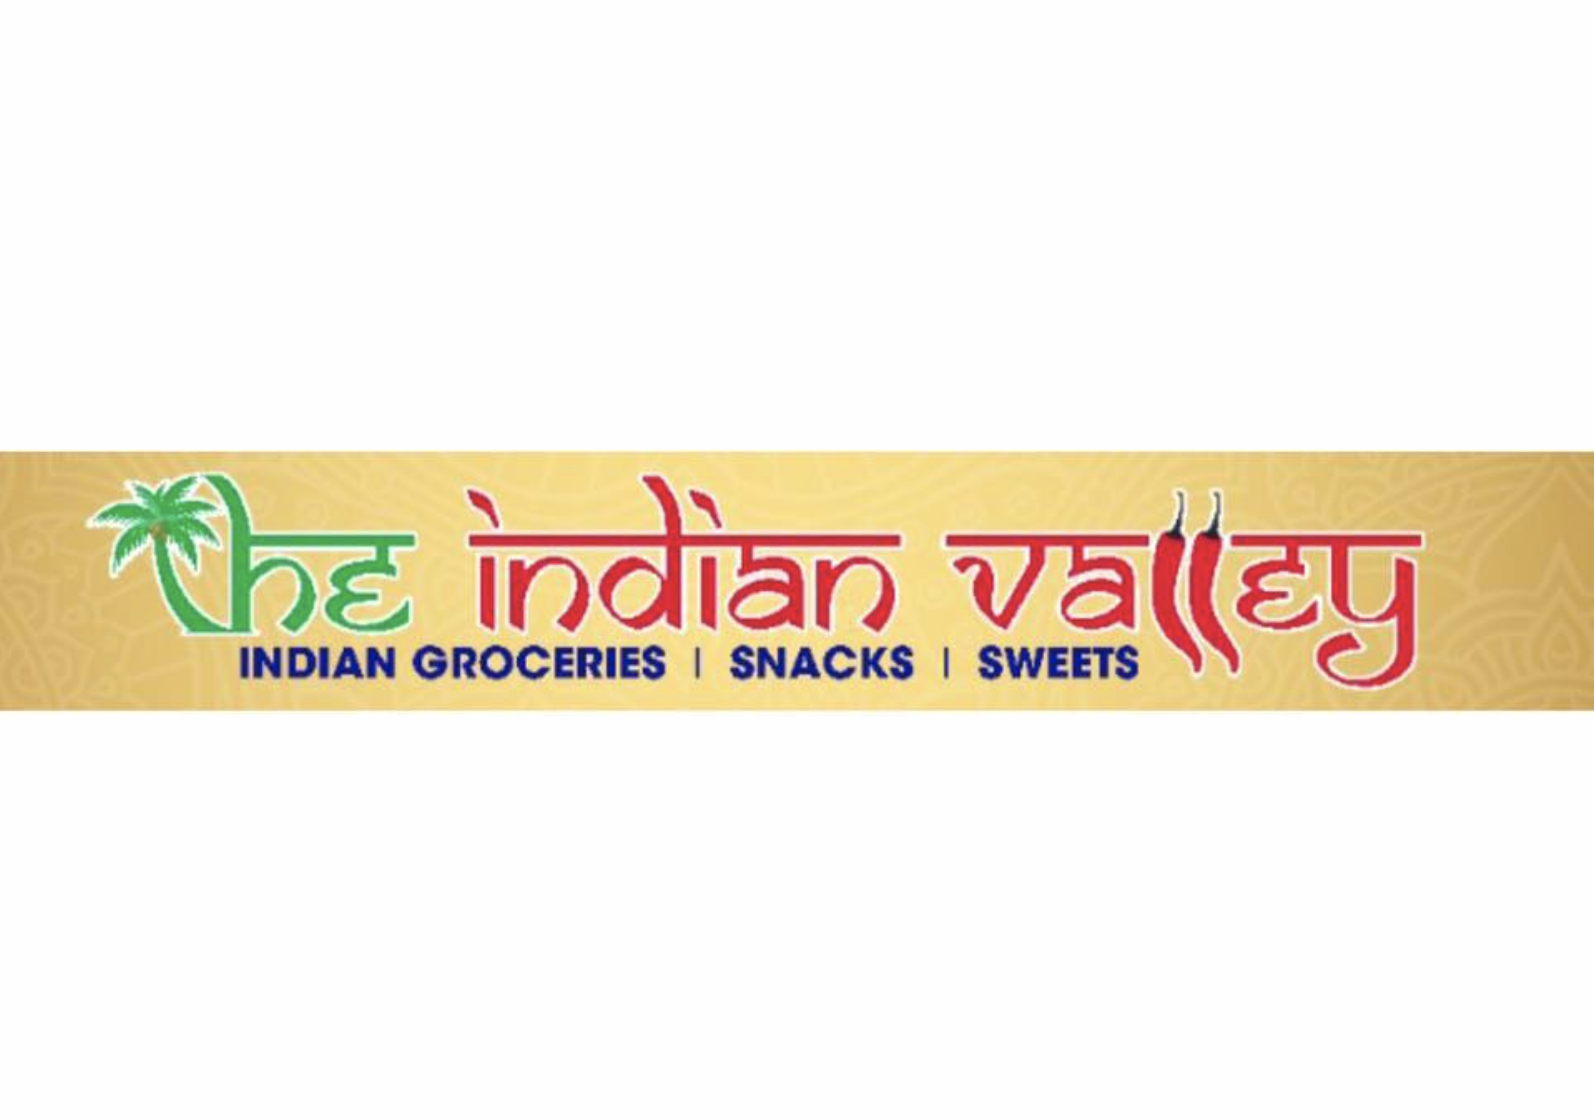 The Indian Valley